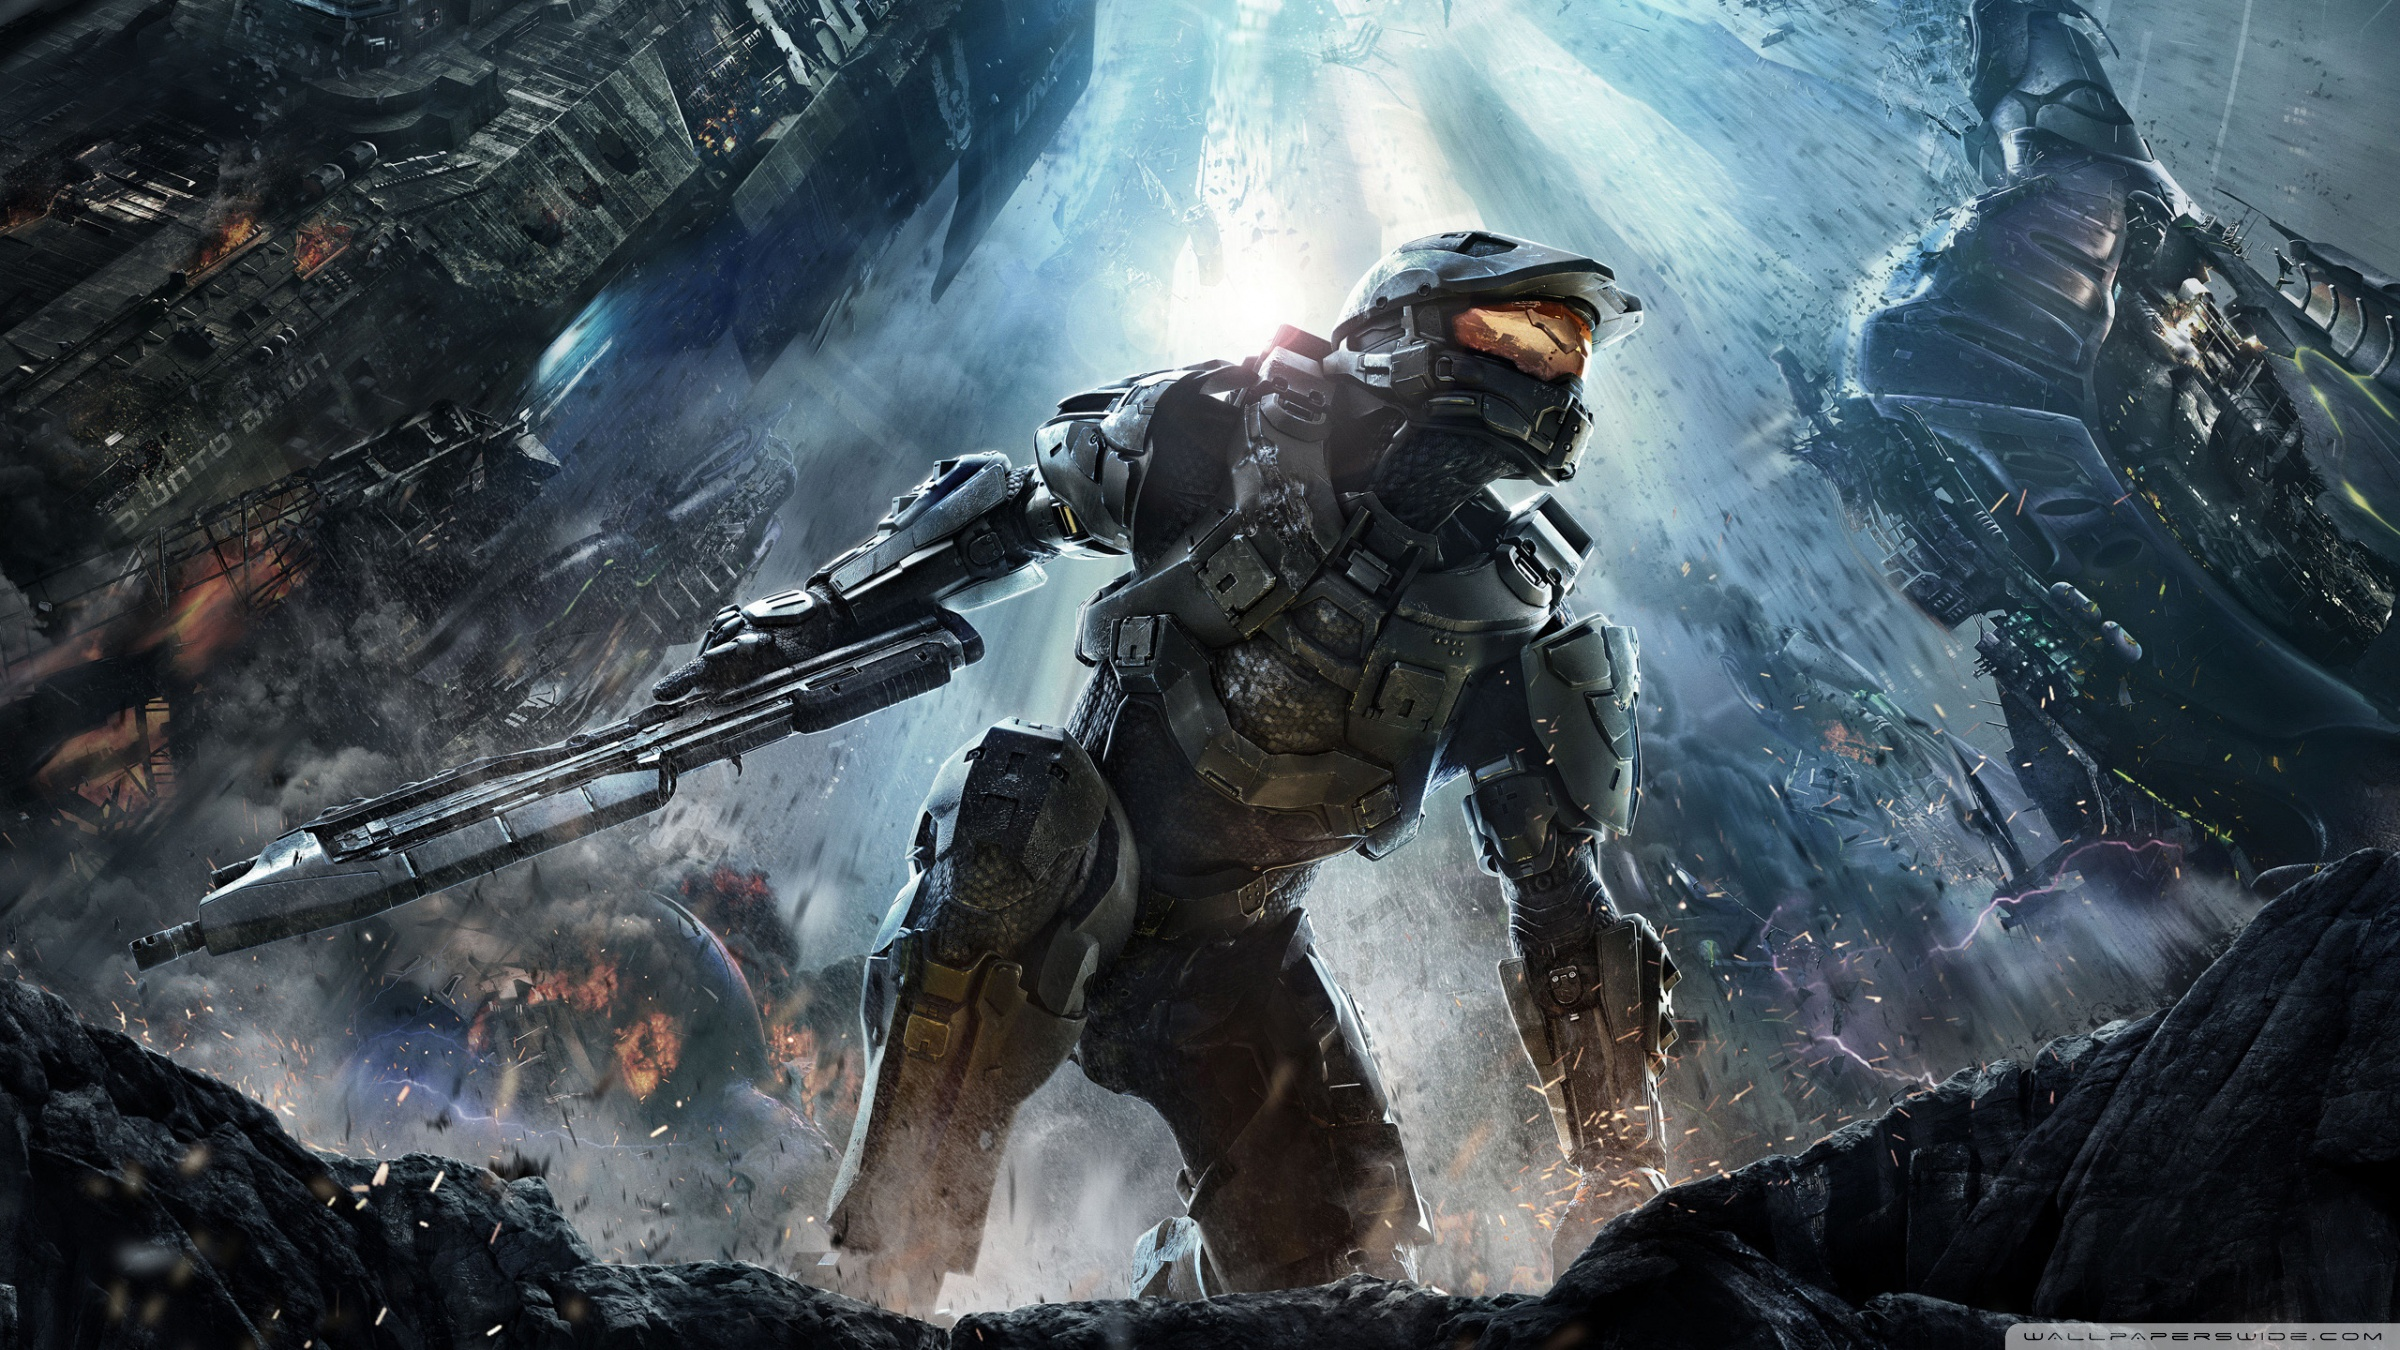 Wallpaper Of Halo